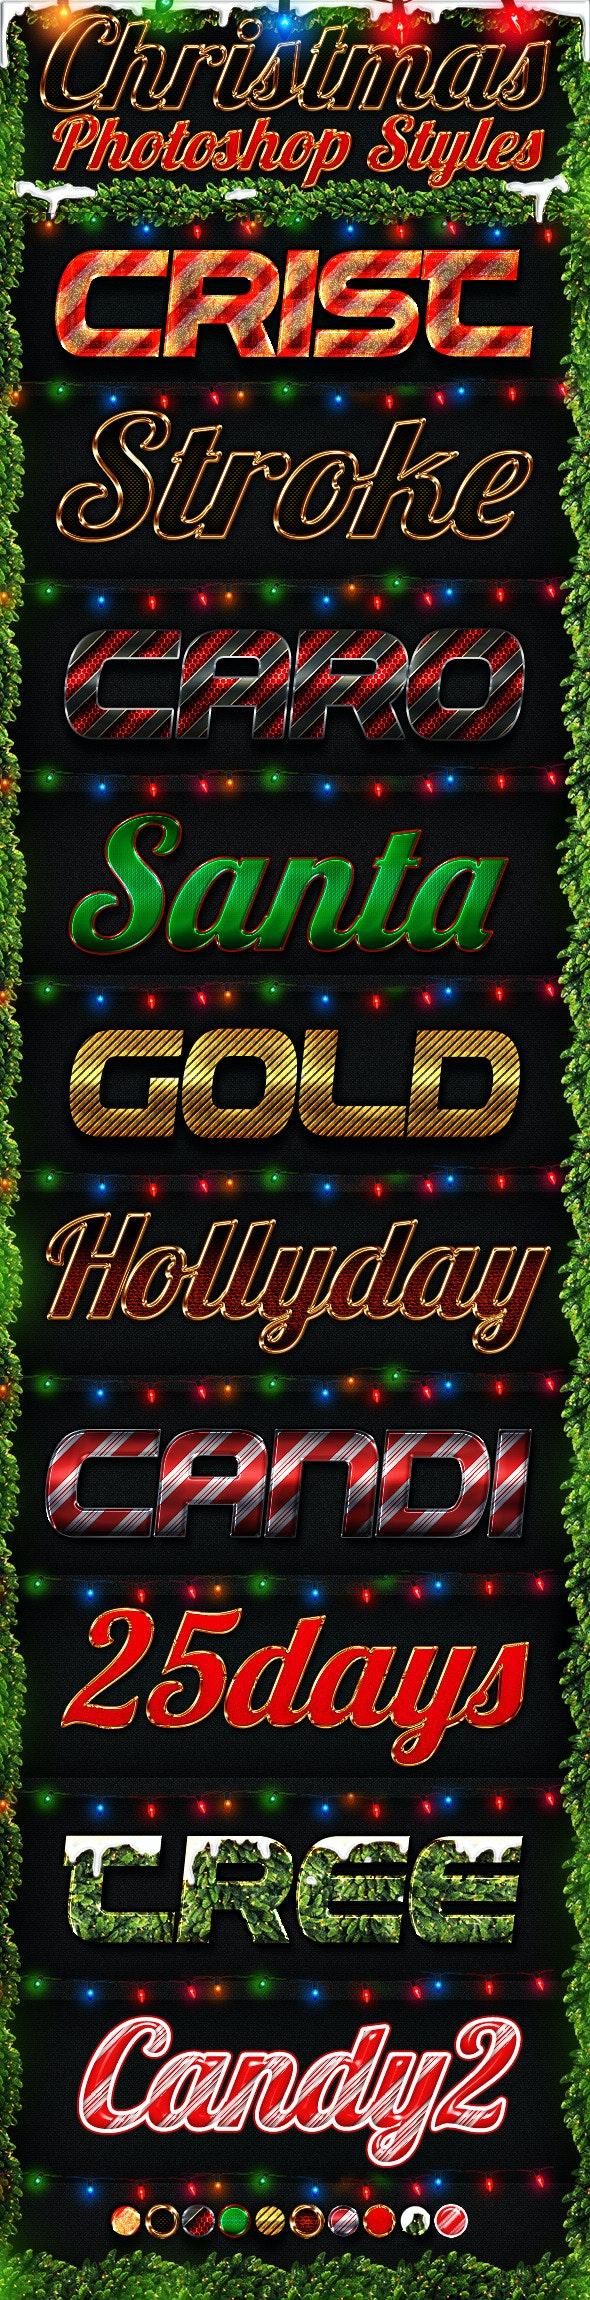 Christmas Photoshop Styles - Text Effects Styles